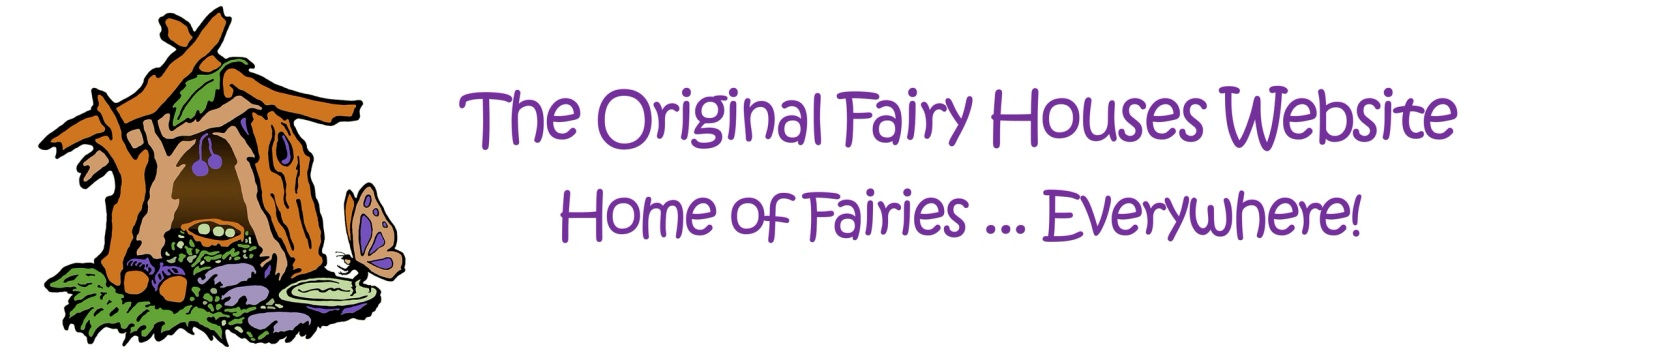 The Original Fairy Houses Website Home of Fairies... Everywhere!